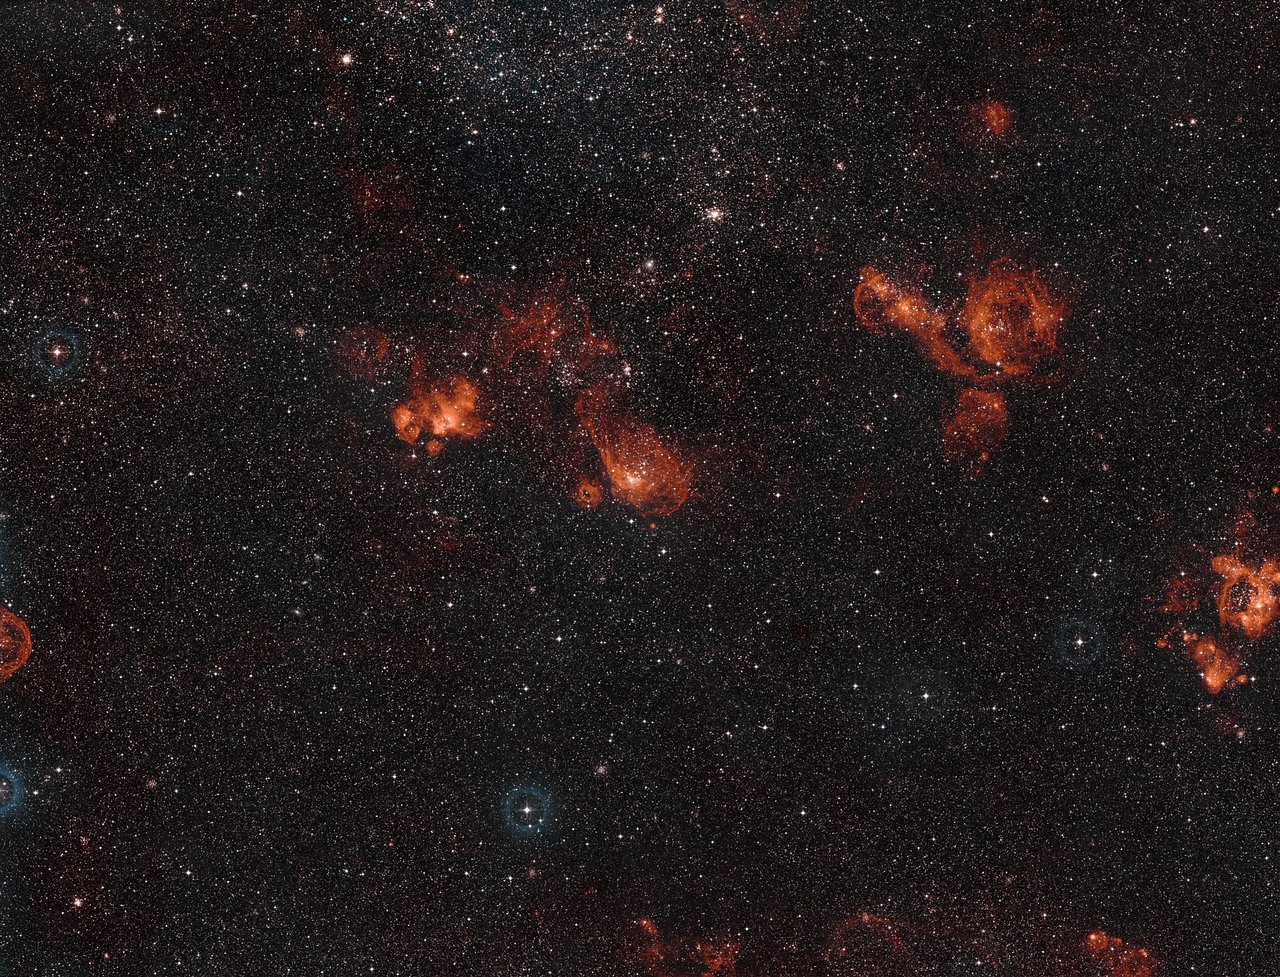 Wide-field view of part of the Large Magellanic Cloud